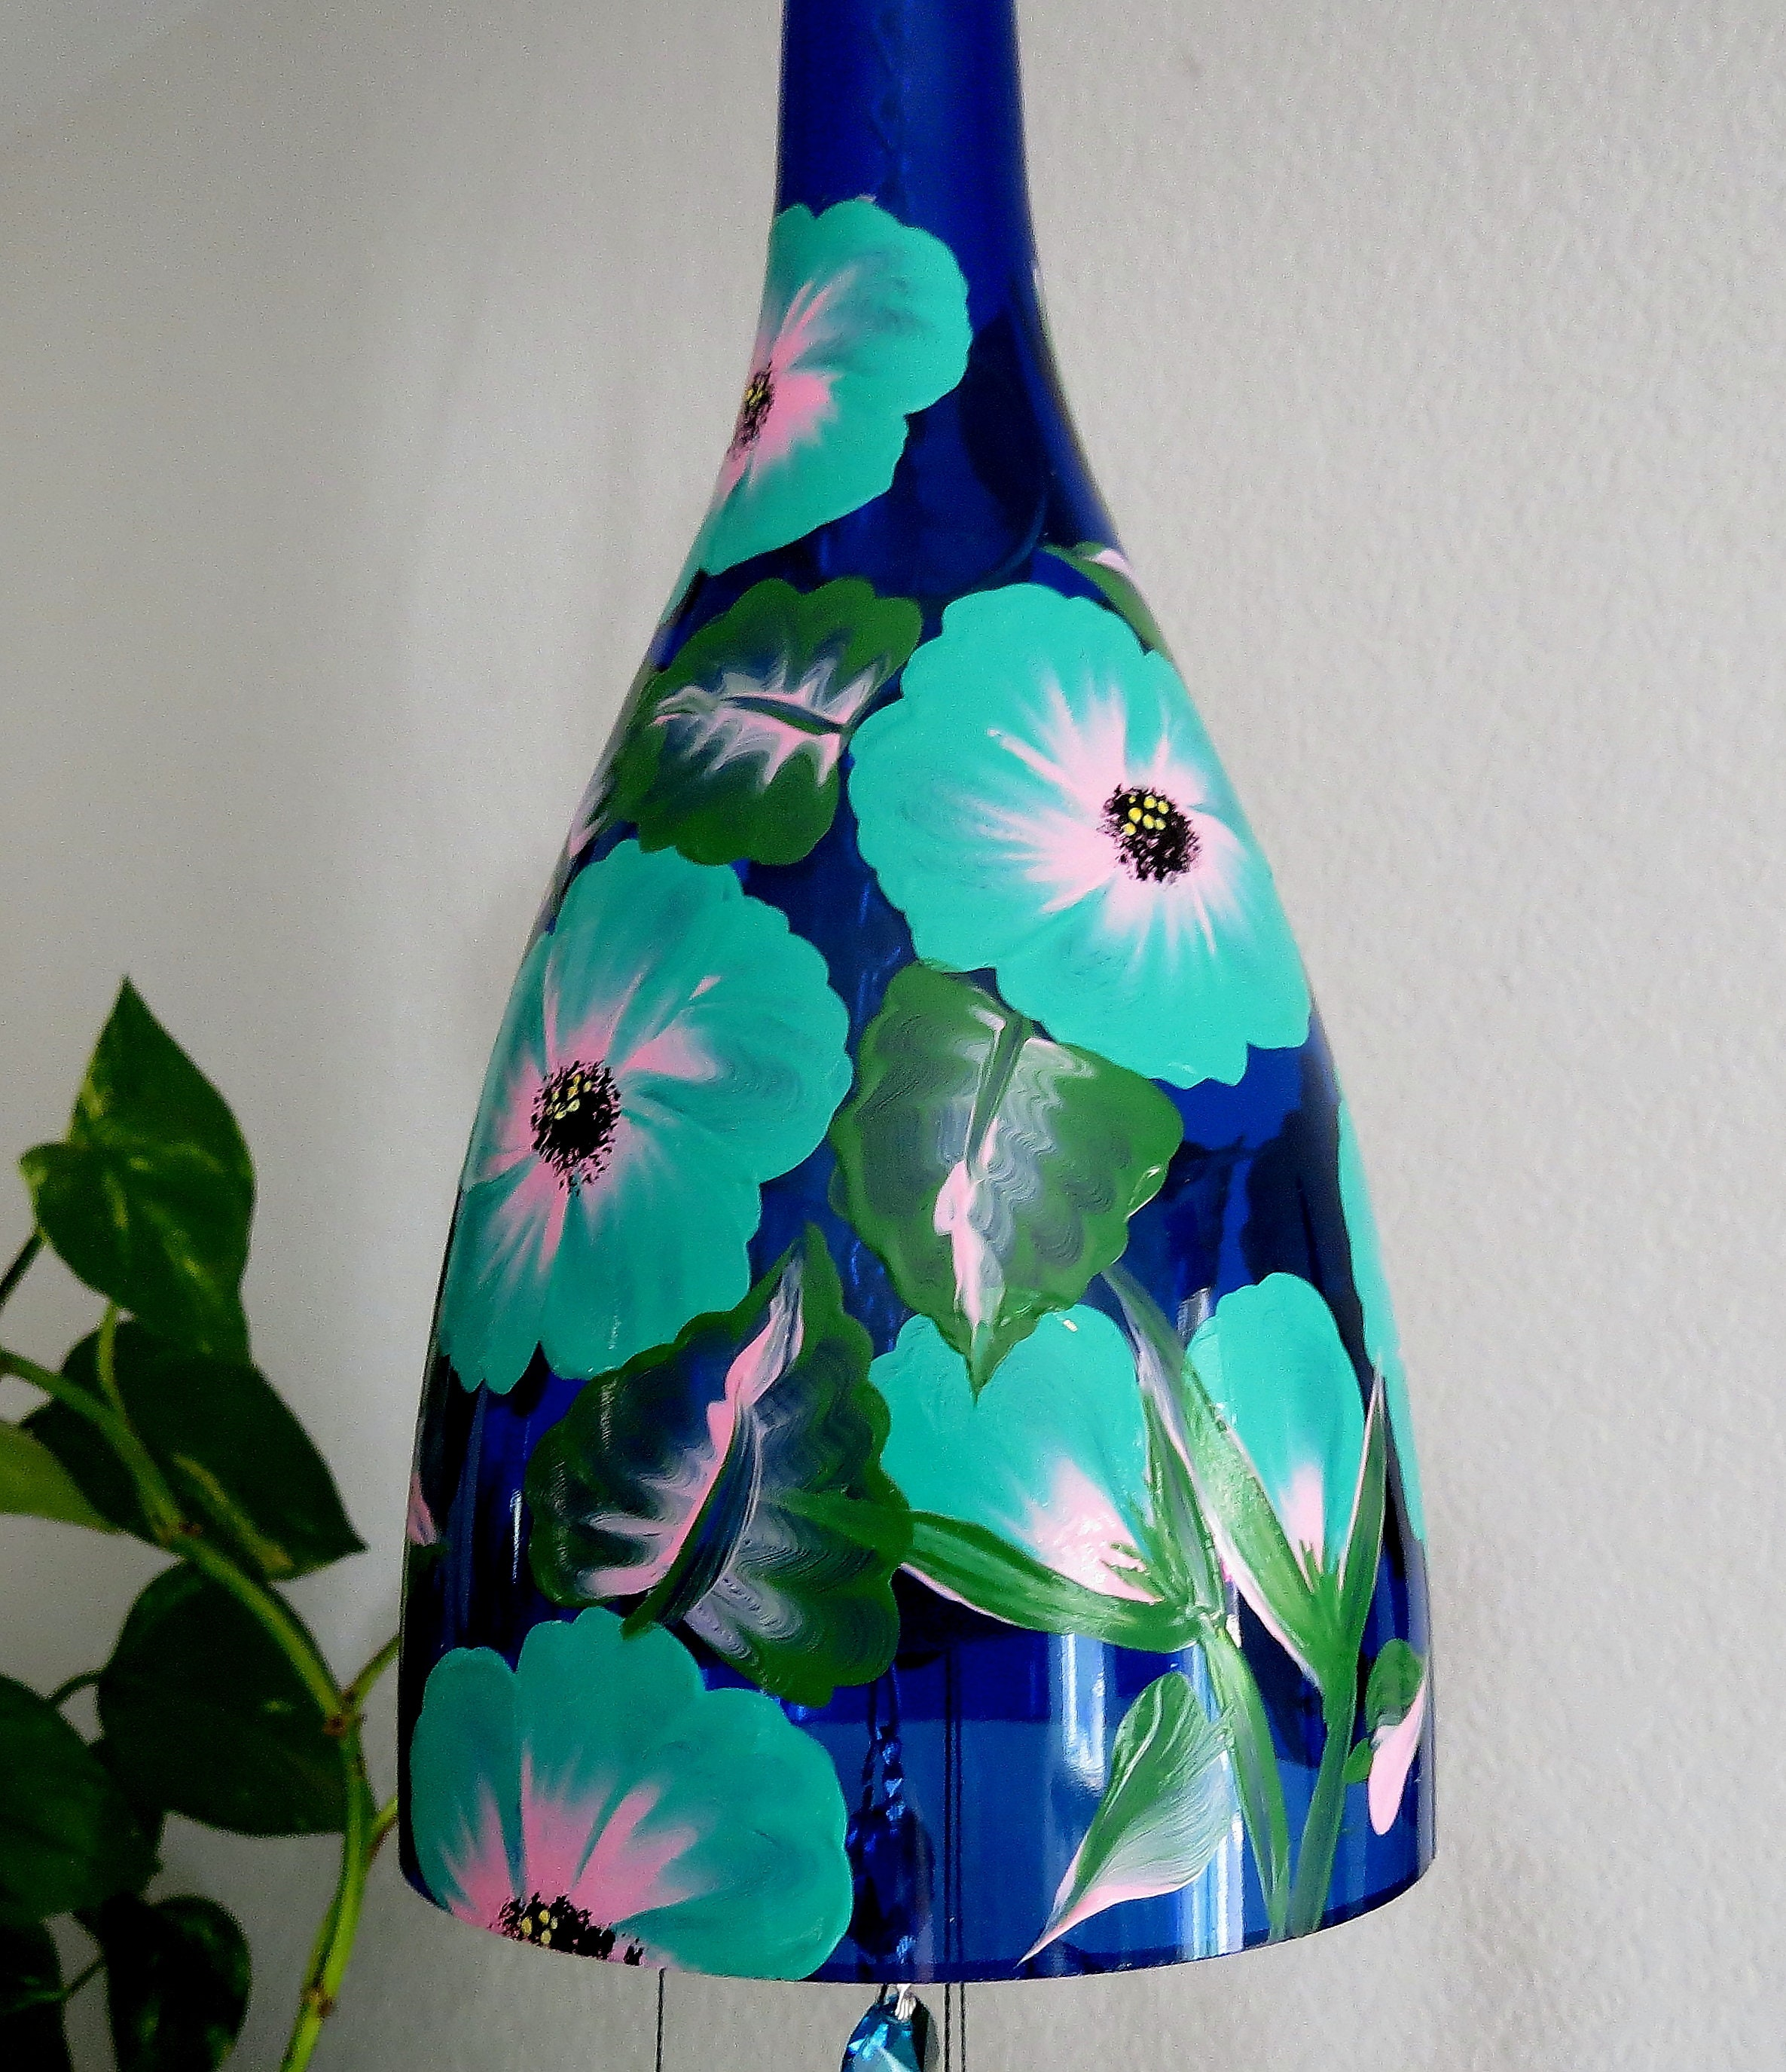 Large Cobalt Blue Wine Bottle Wind Chime Teal And Pink Flowers